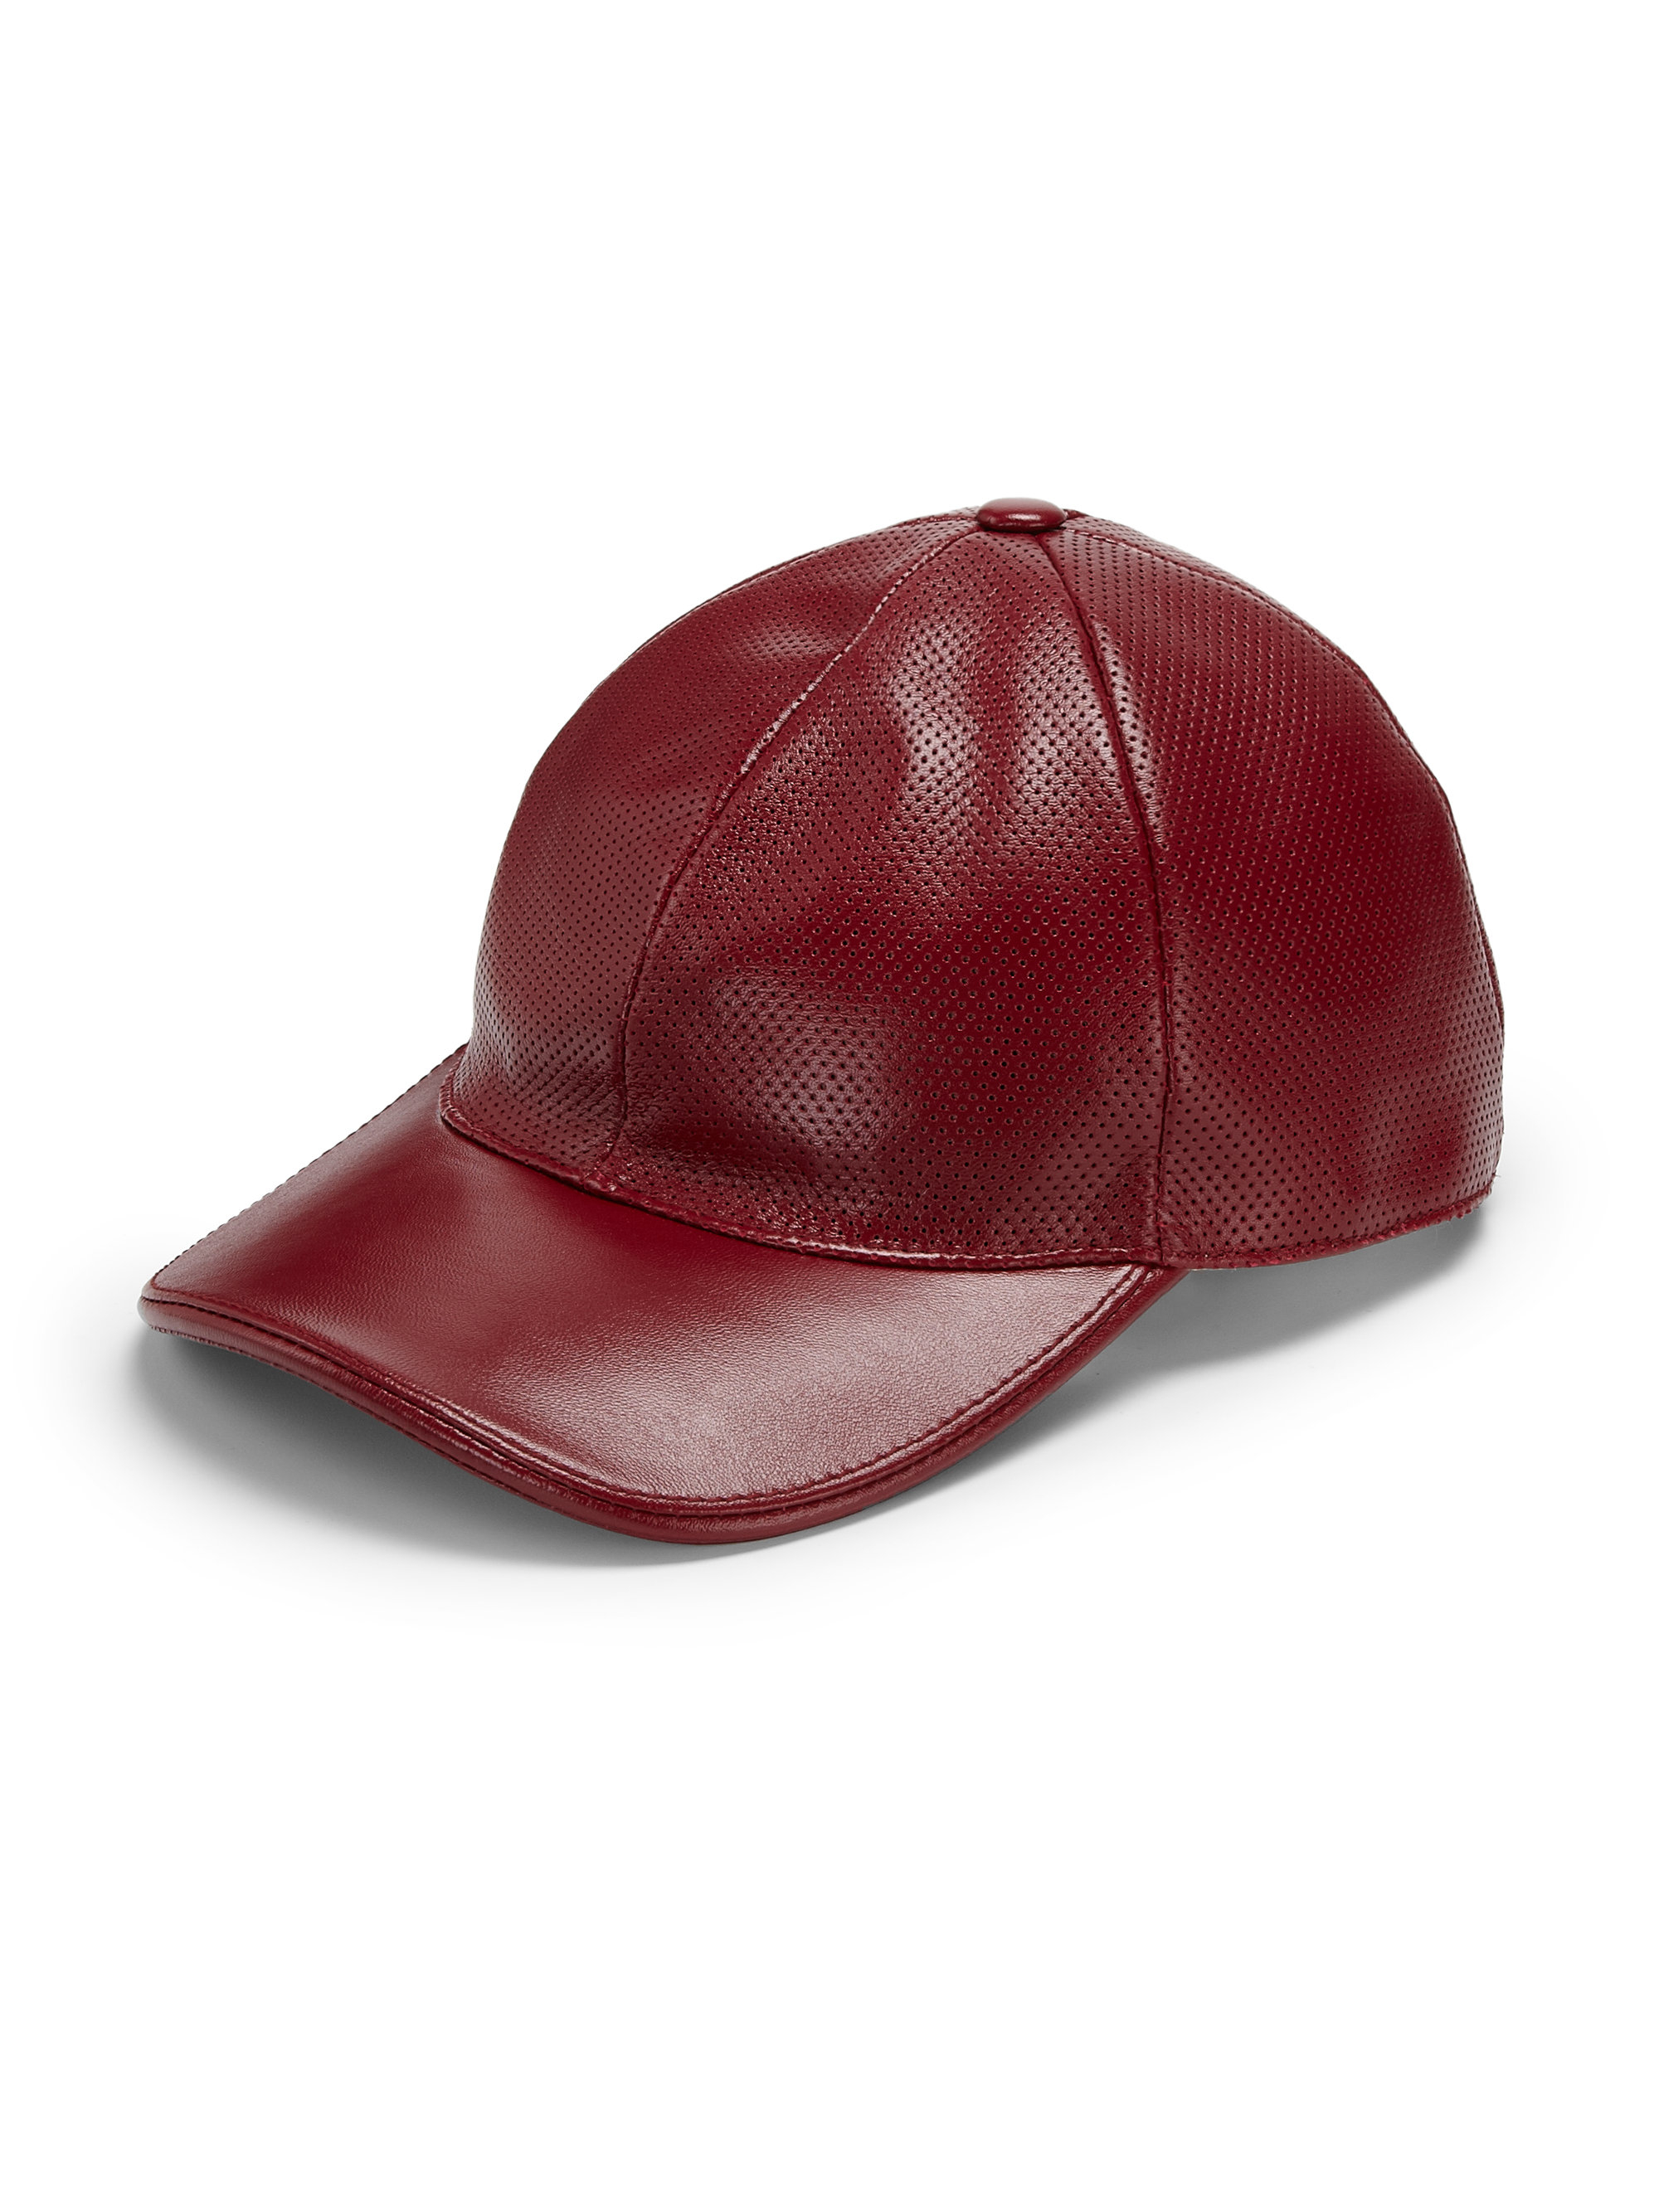 Lyst - Gucci Leather Baseball Hat in Red for Men b8cdfa29b4e